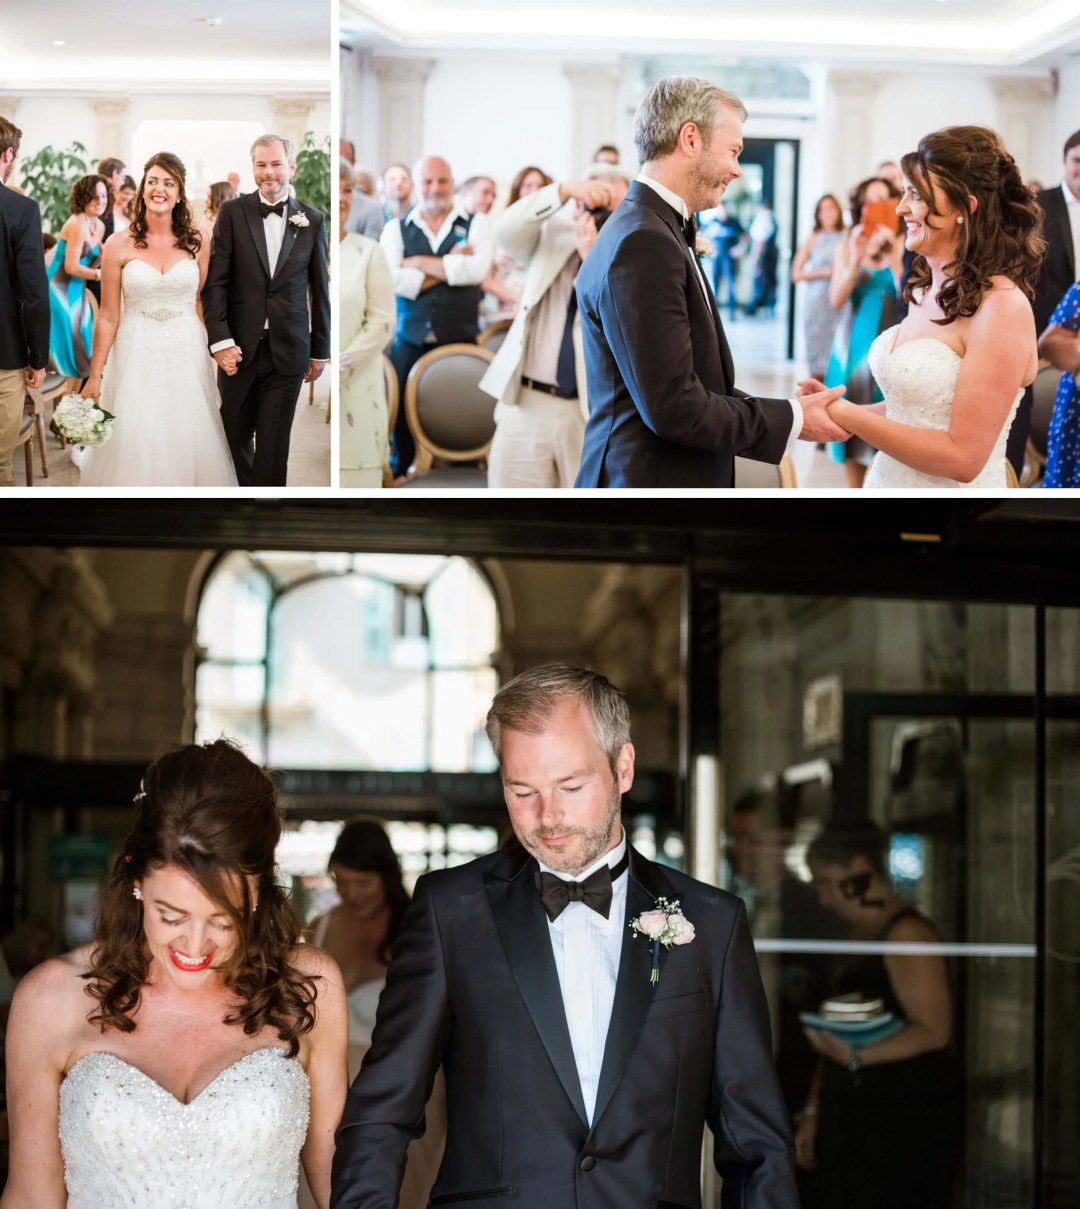 la-mairie-cannes-town-hall-destination-wedding-brighton-wedding-photographer